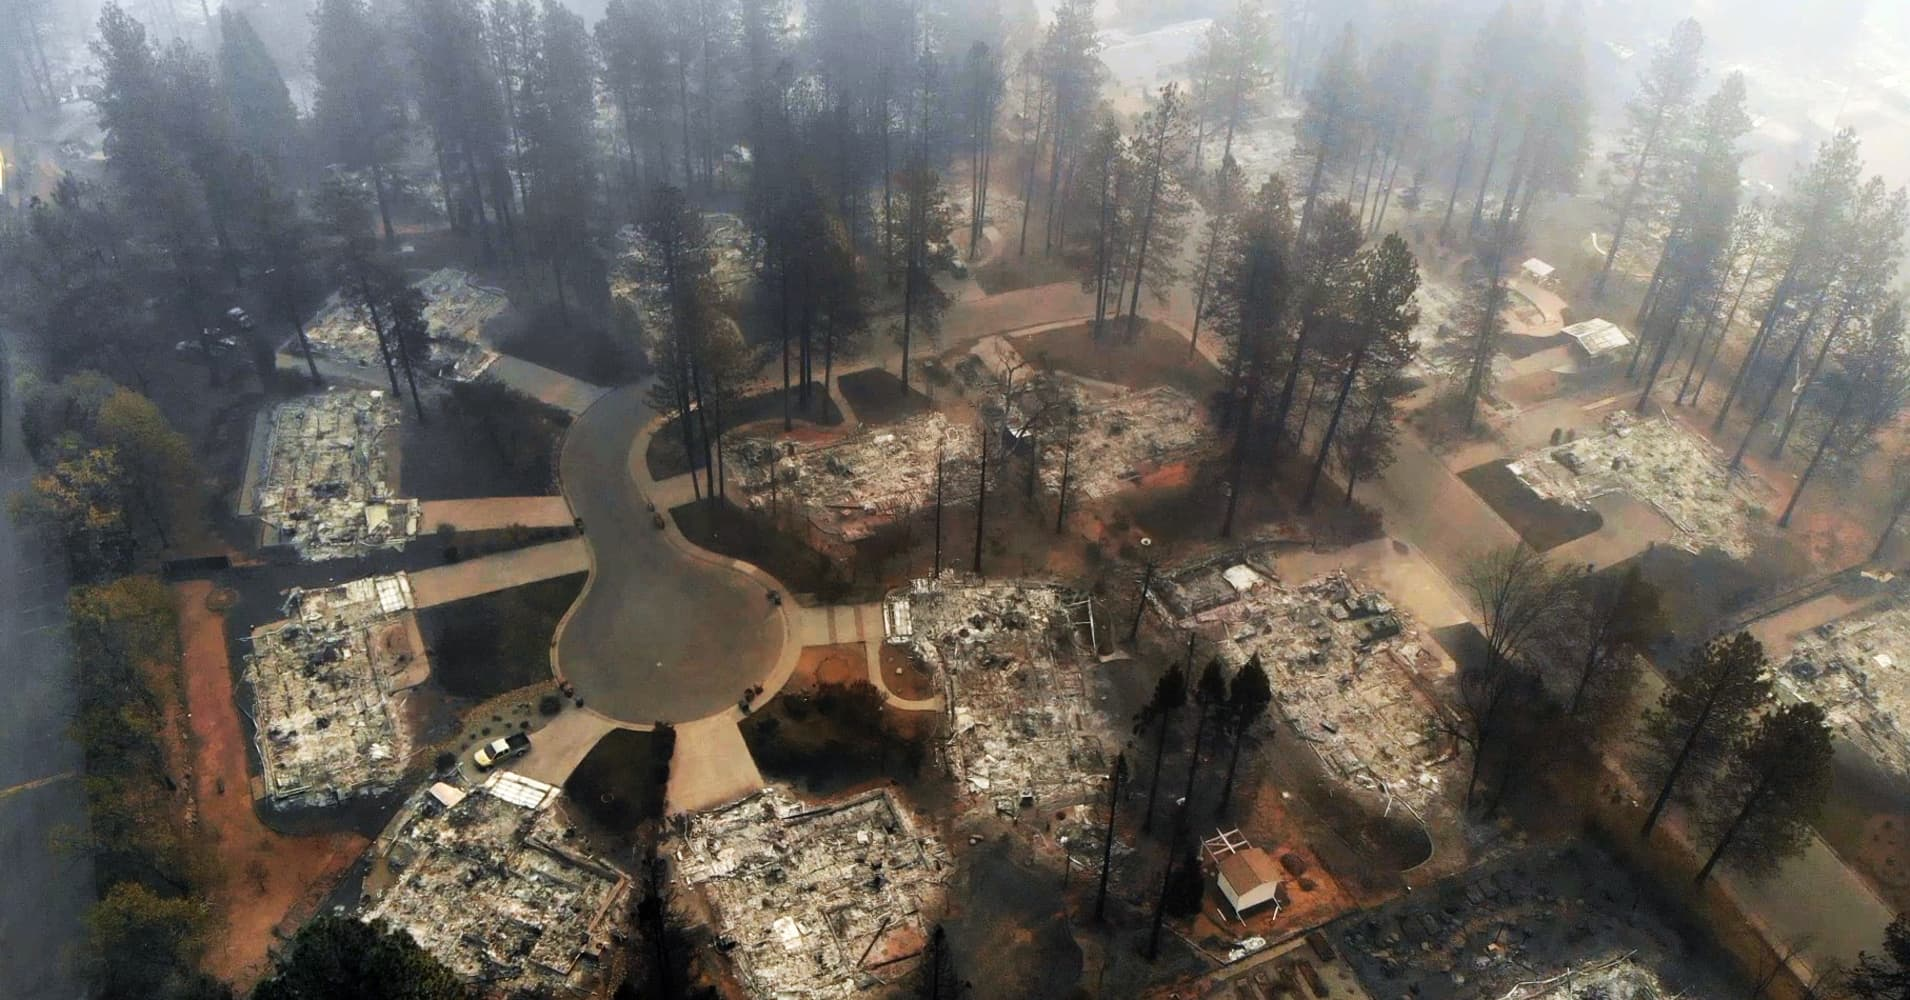 Death toll rises and more than 500 still missing, as rains douse California wildfire